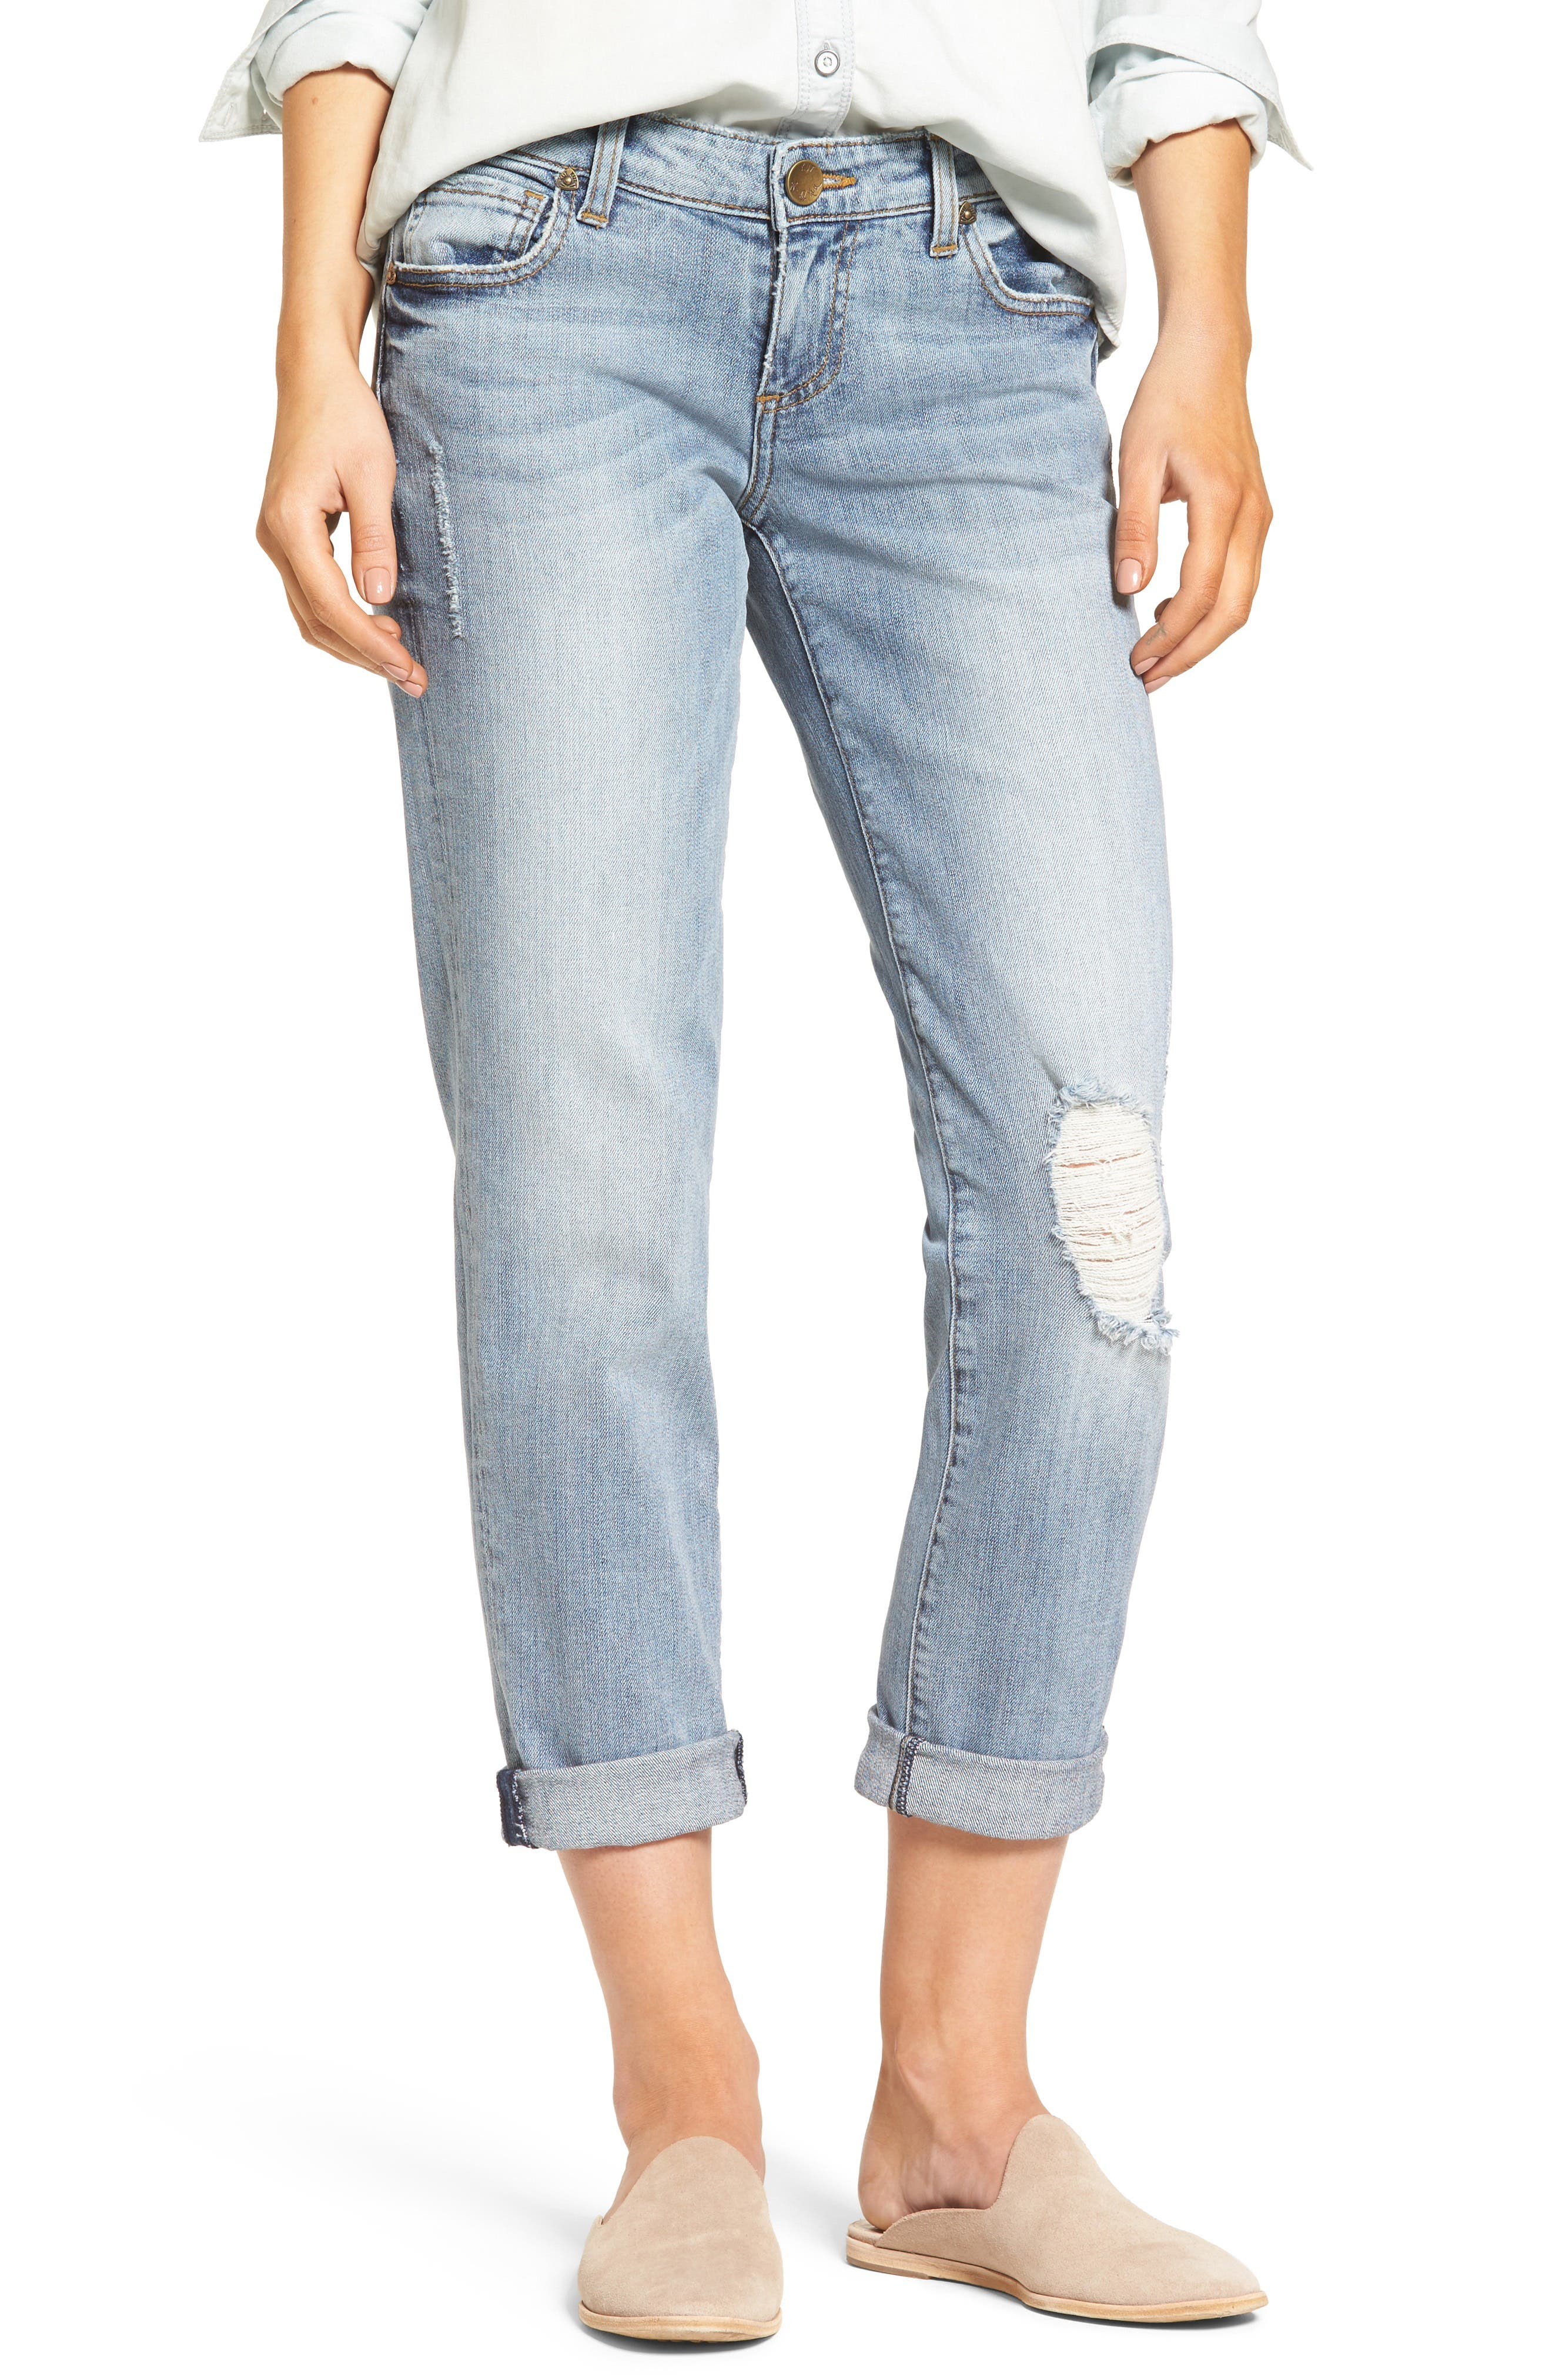 Alternate Image 1 Selected - KUT from the Kloth Catherine Distressed Boyfriend Jeans (Regarded) (Regular & Petite)